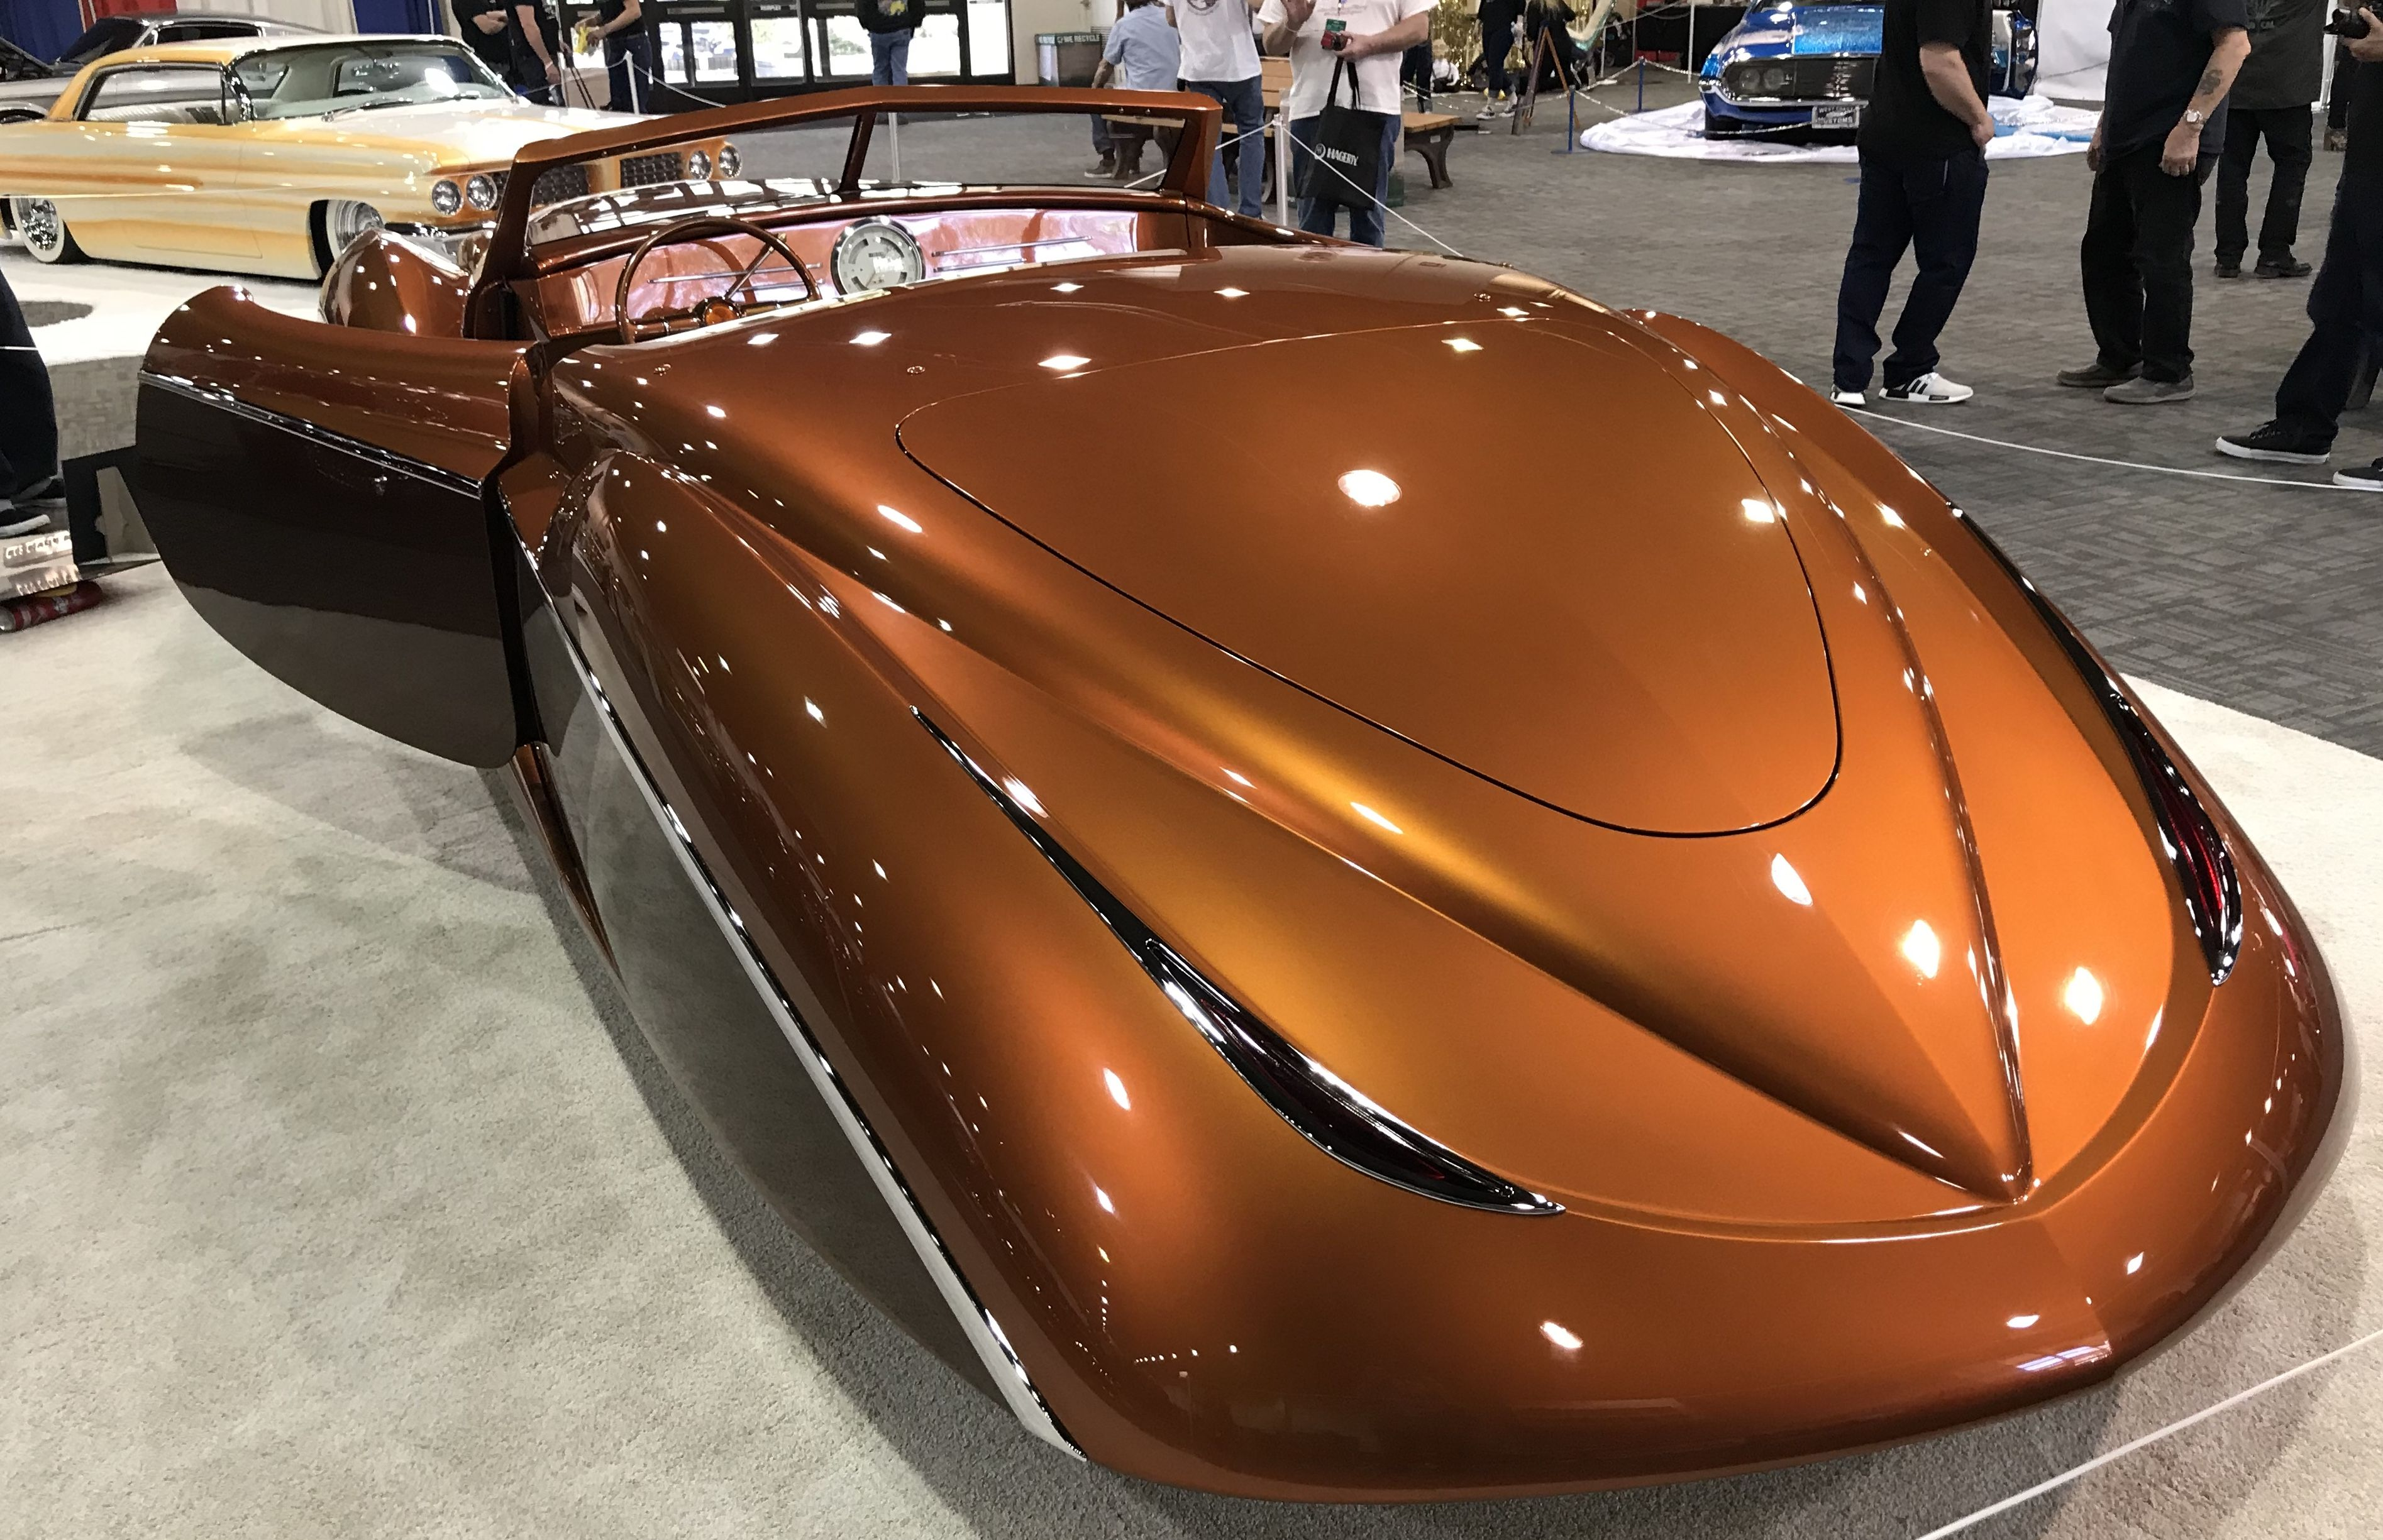 Pin By Cris Mcmann On Hot Rods And Kustoms Hot Cars Sweet Cars